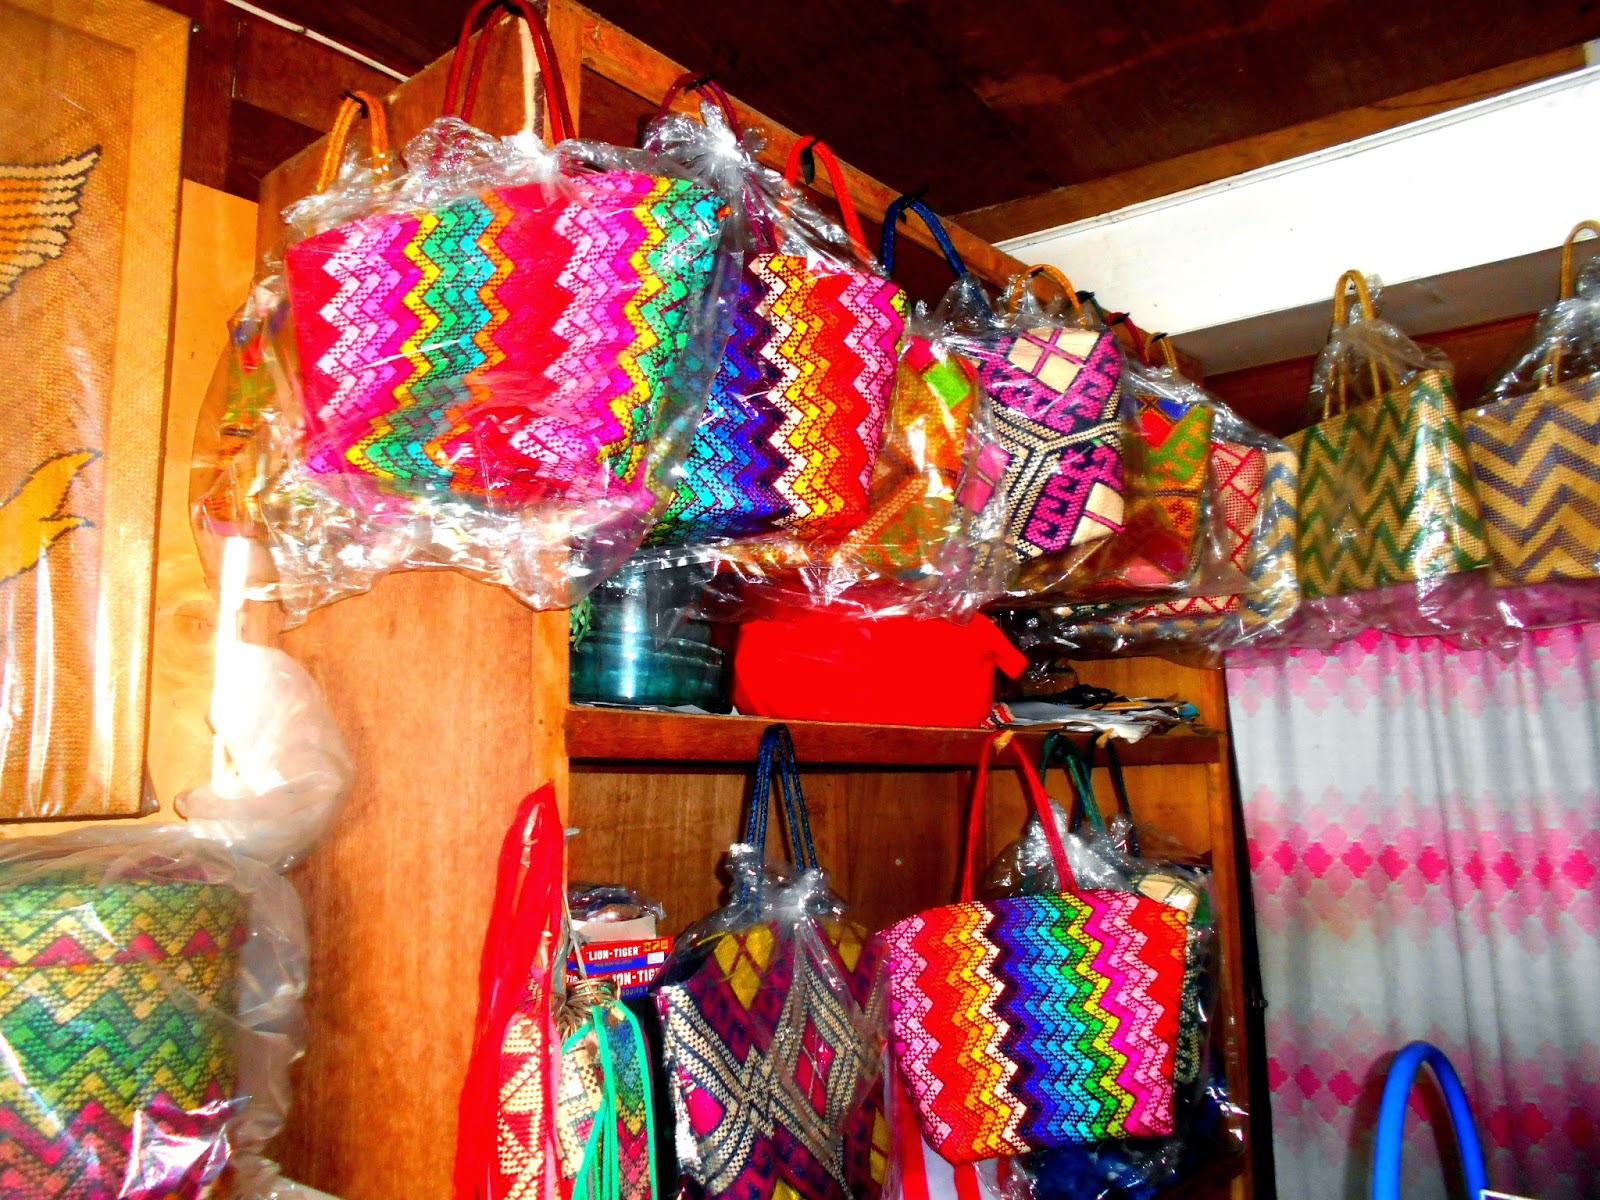 banig organizer bag Shoes and bags that go with bandeau skirts and tops from kalinga plus other wearable pieces have been the stars of the show for the past three runs, largely due to the organizers' vision of bridging tradition with the demands of today's market.